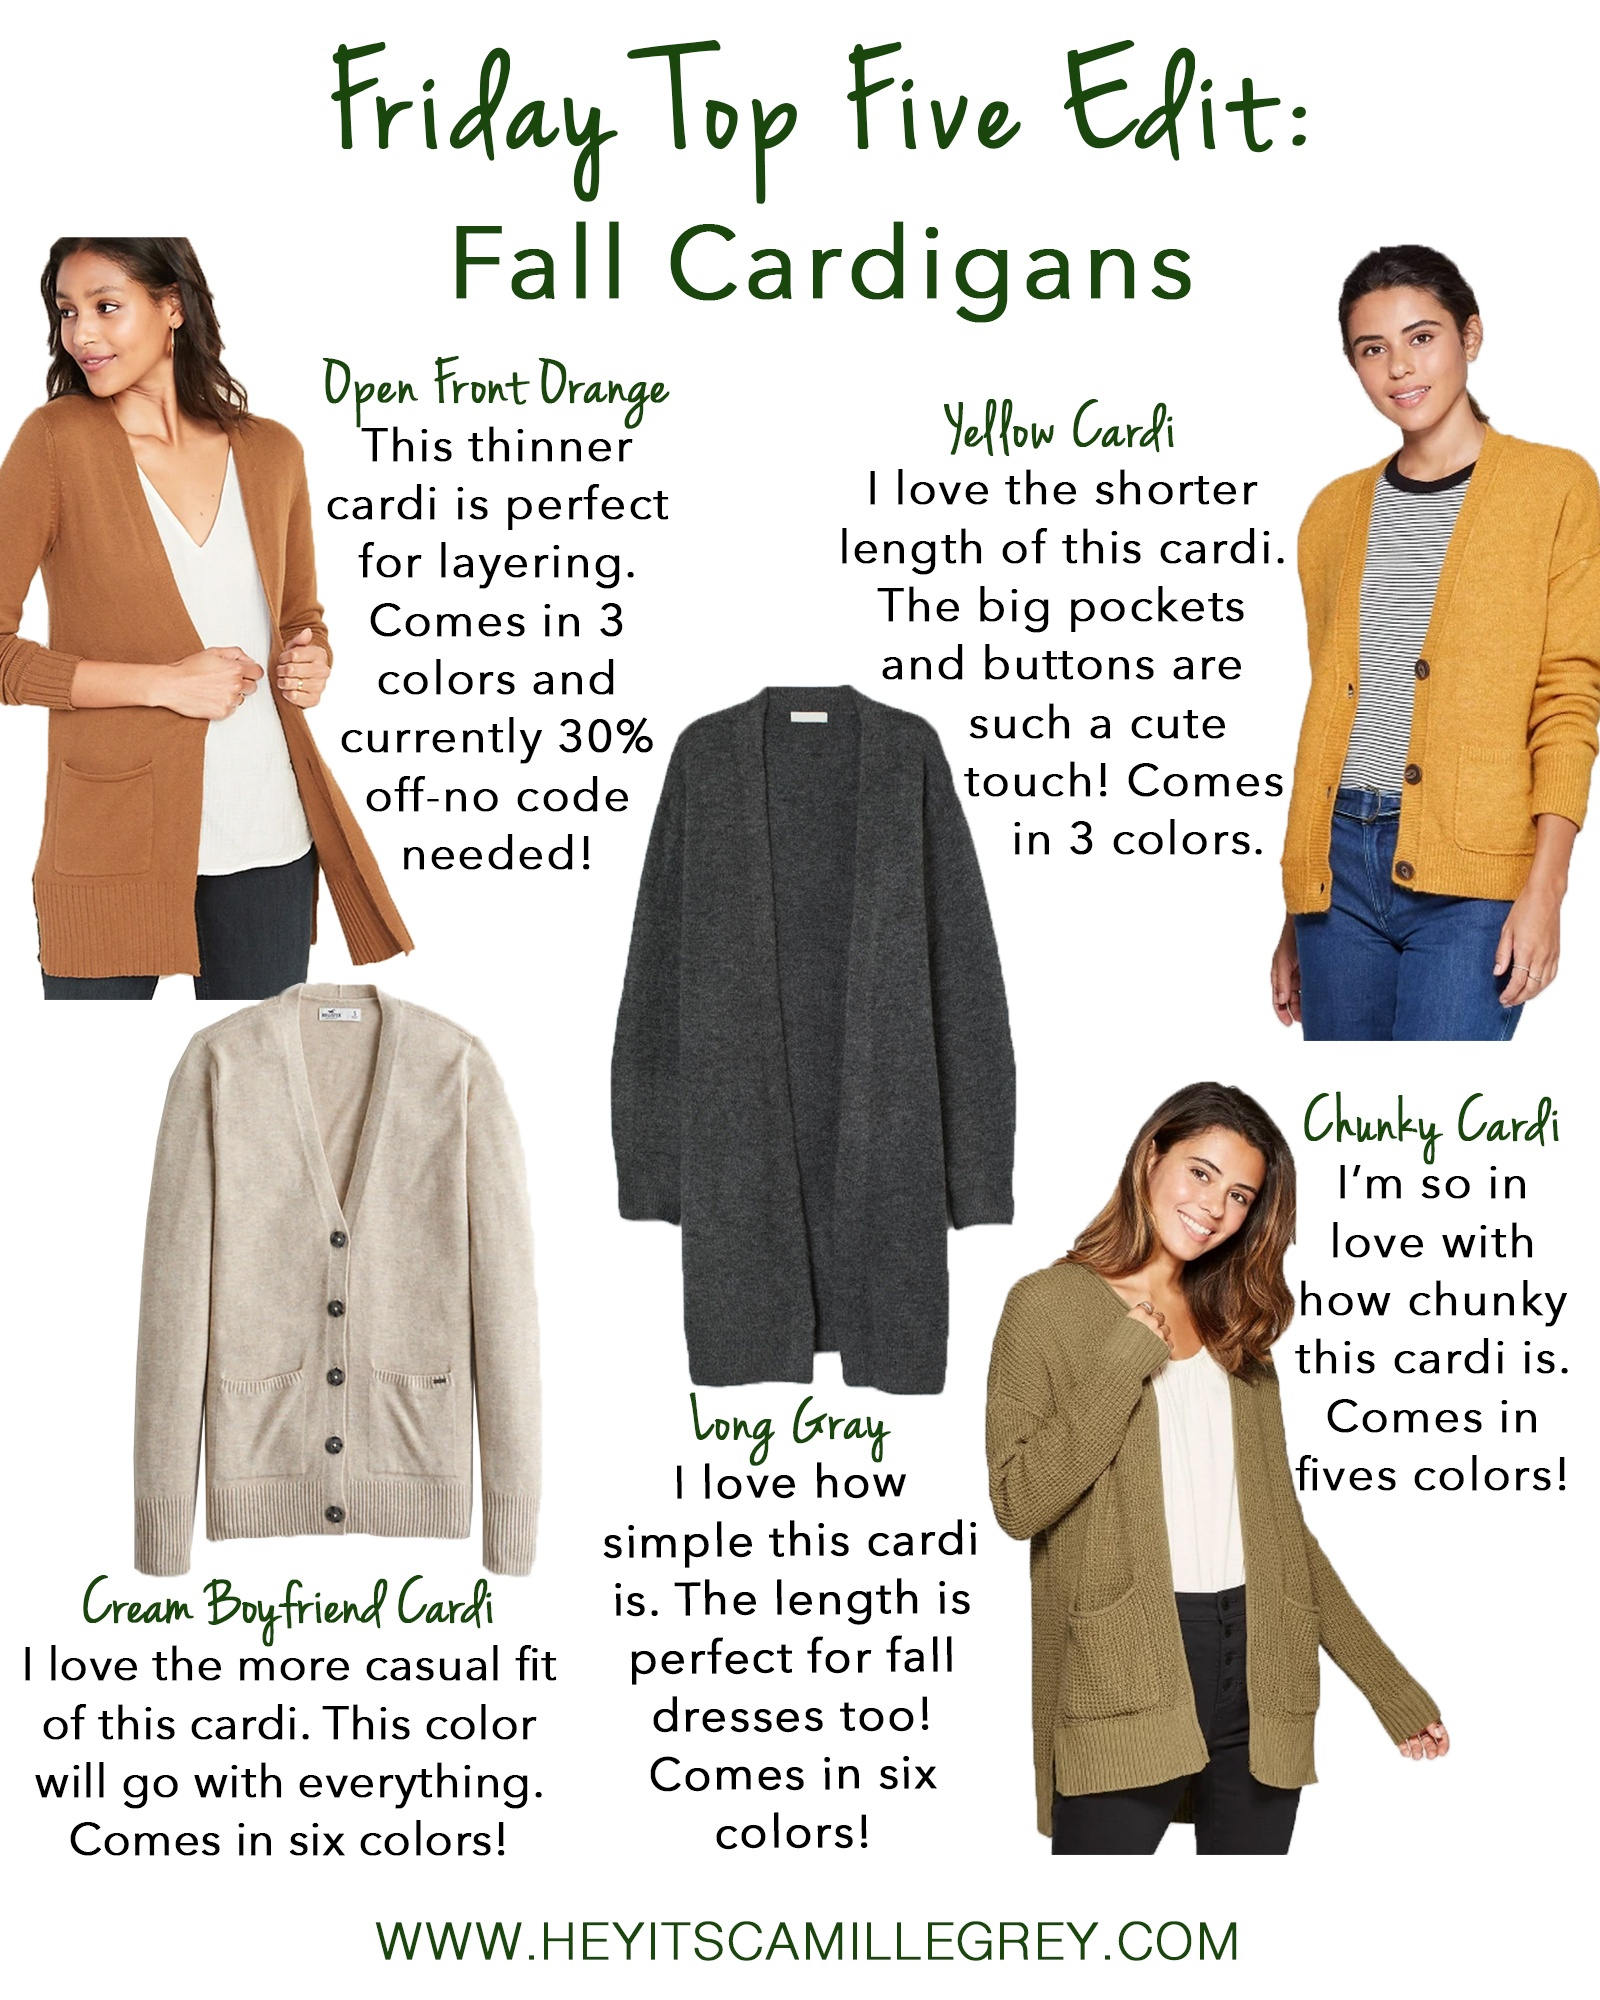 Friday Top Five Edit: Fall Cardigans | Hey It's Camille Grey #fall #fallfashion #cardigans #falltime #falloutfits